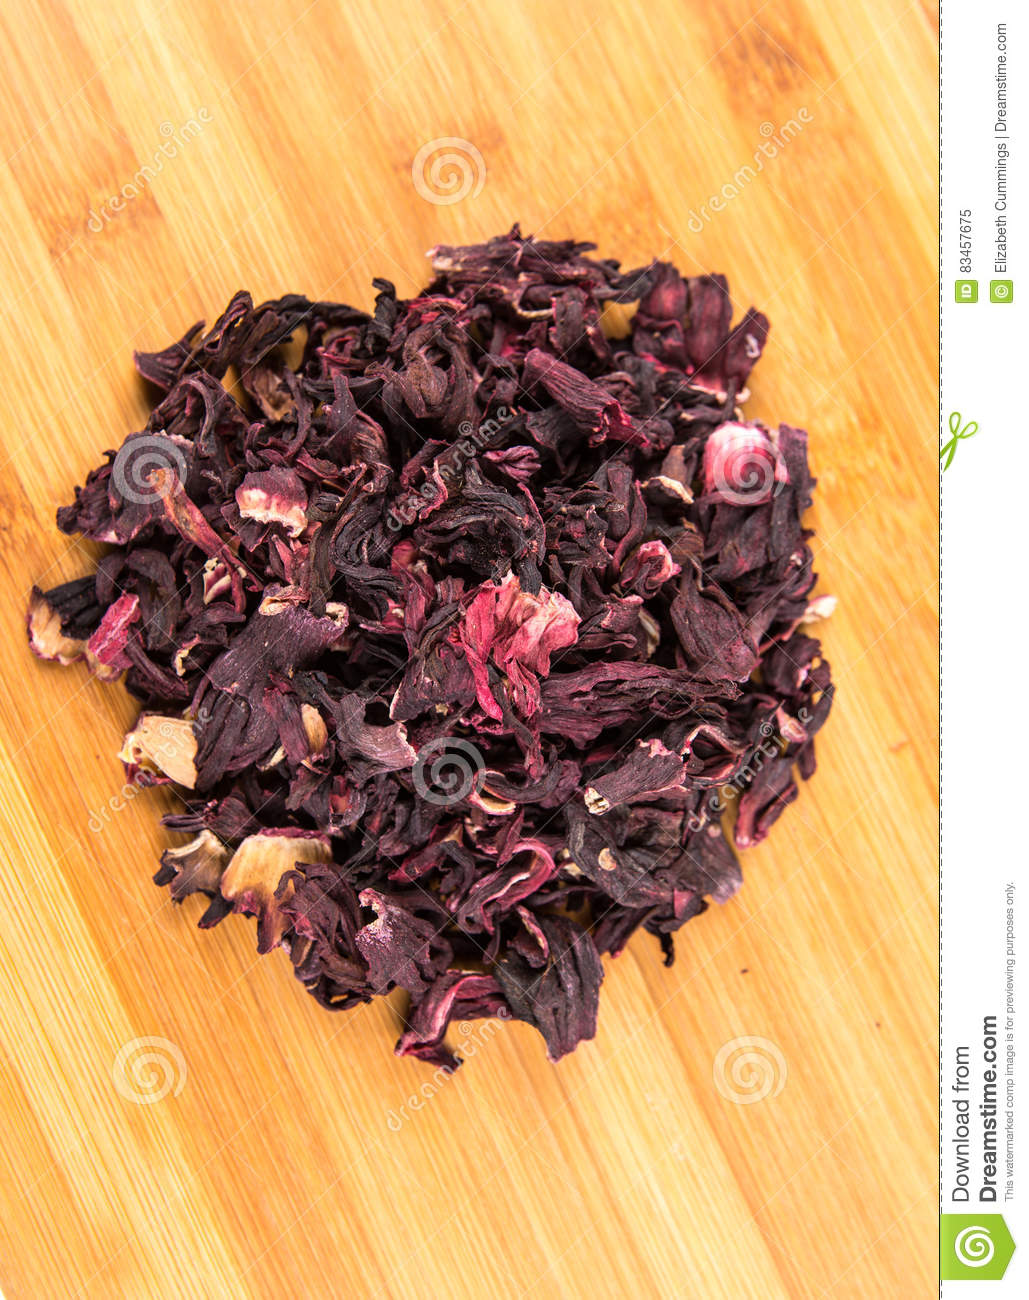 Dried Hibiscus Flower Petals Stock Image Image Of Ingredients